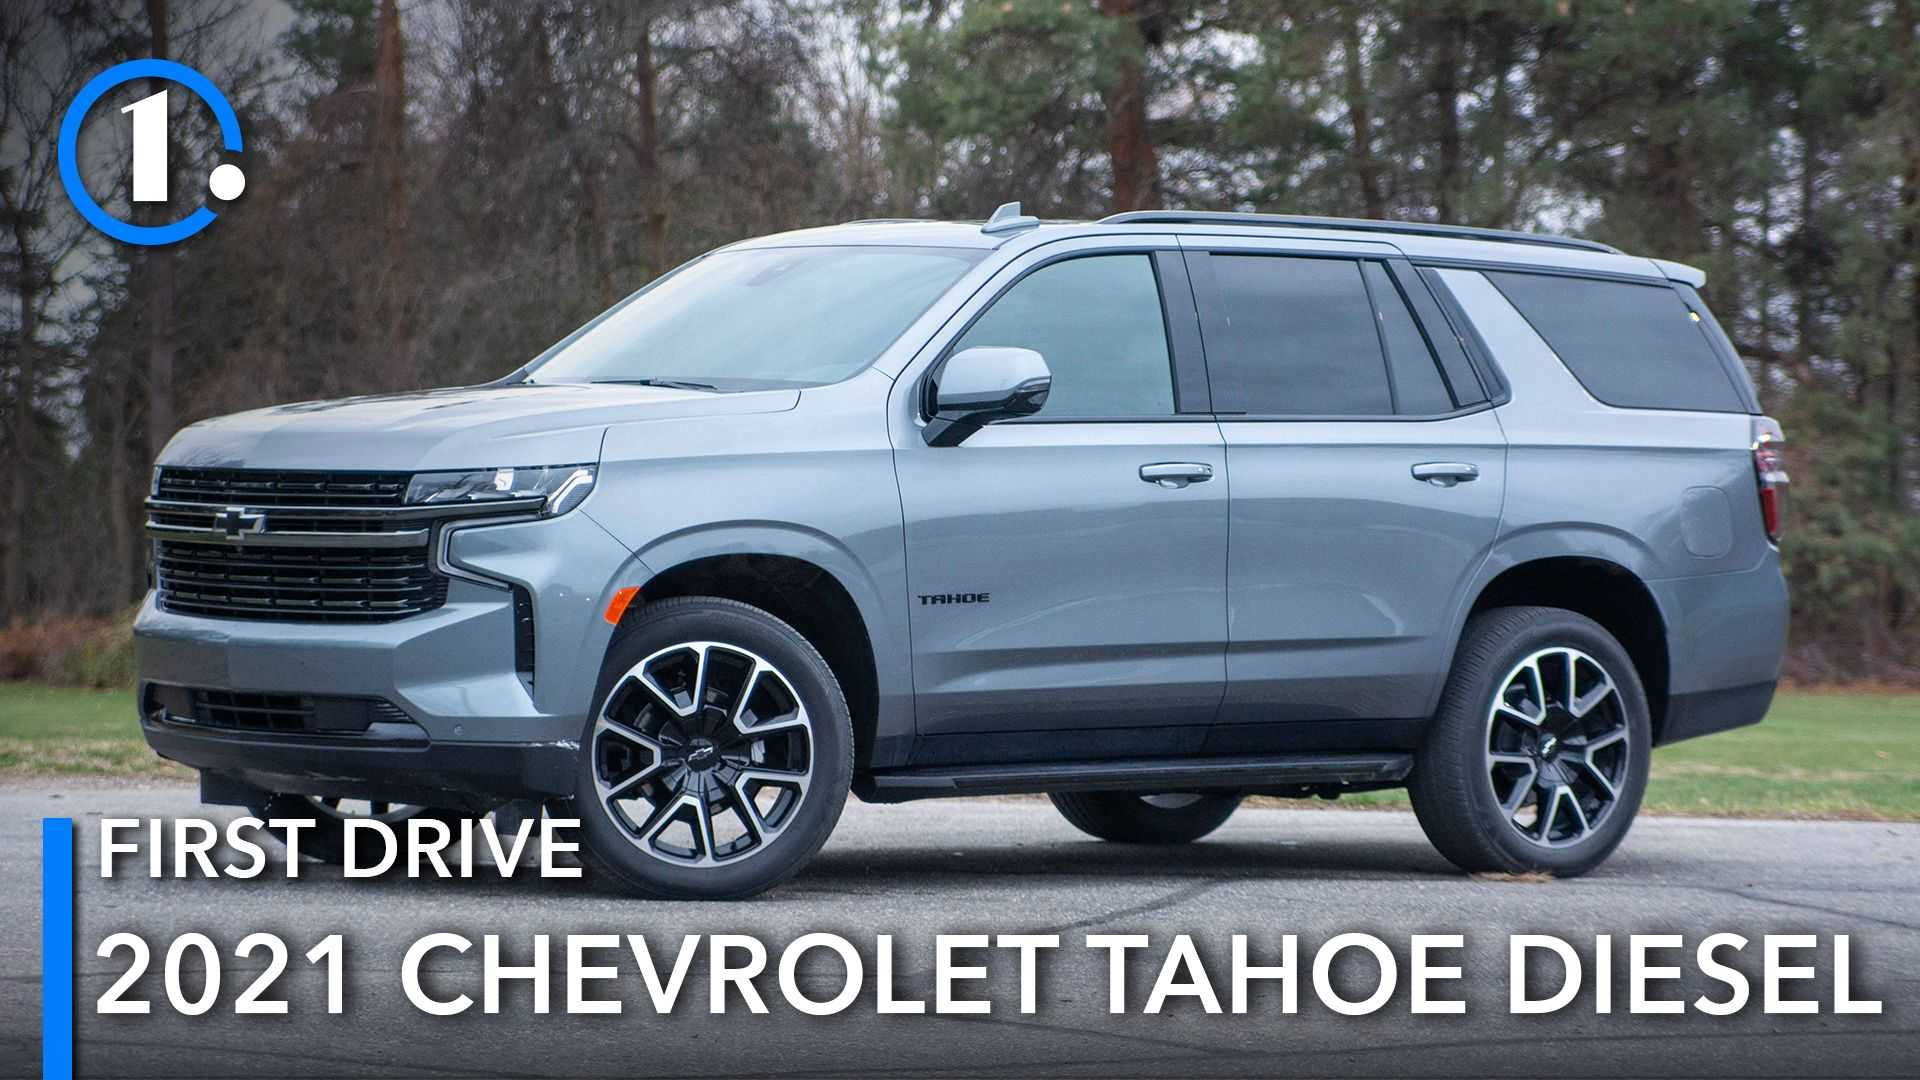 2021 Chevrolet Tahoe Diesel First Drive Review: An Engine For All